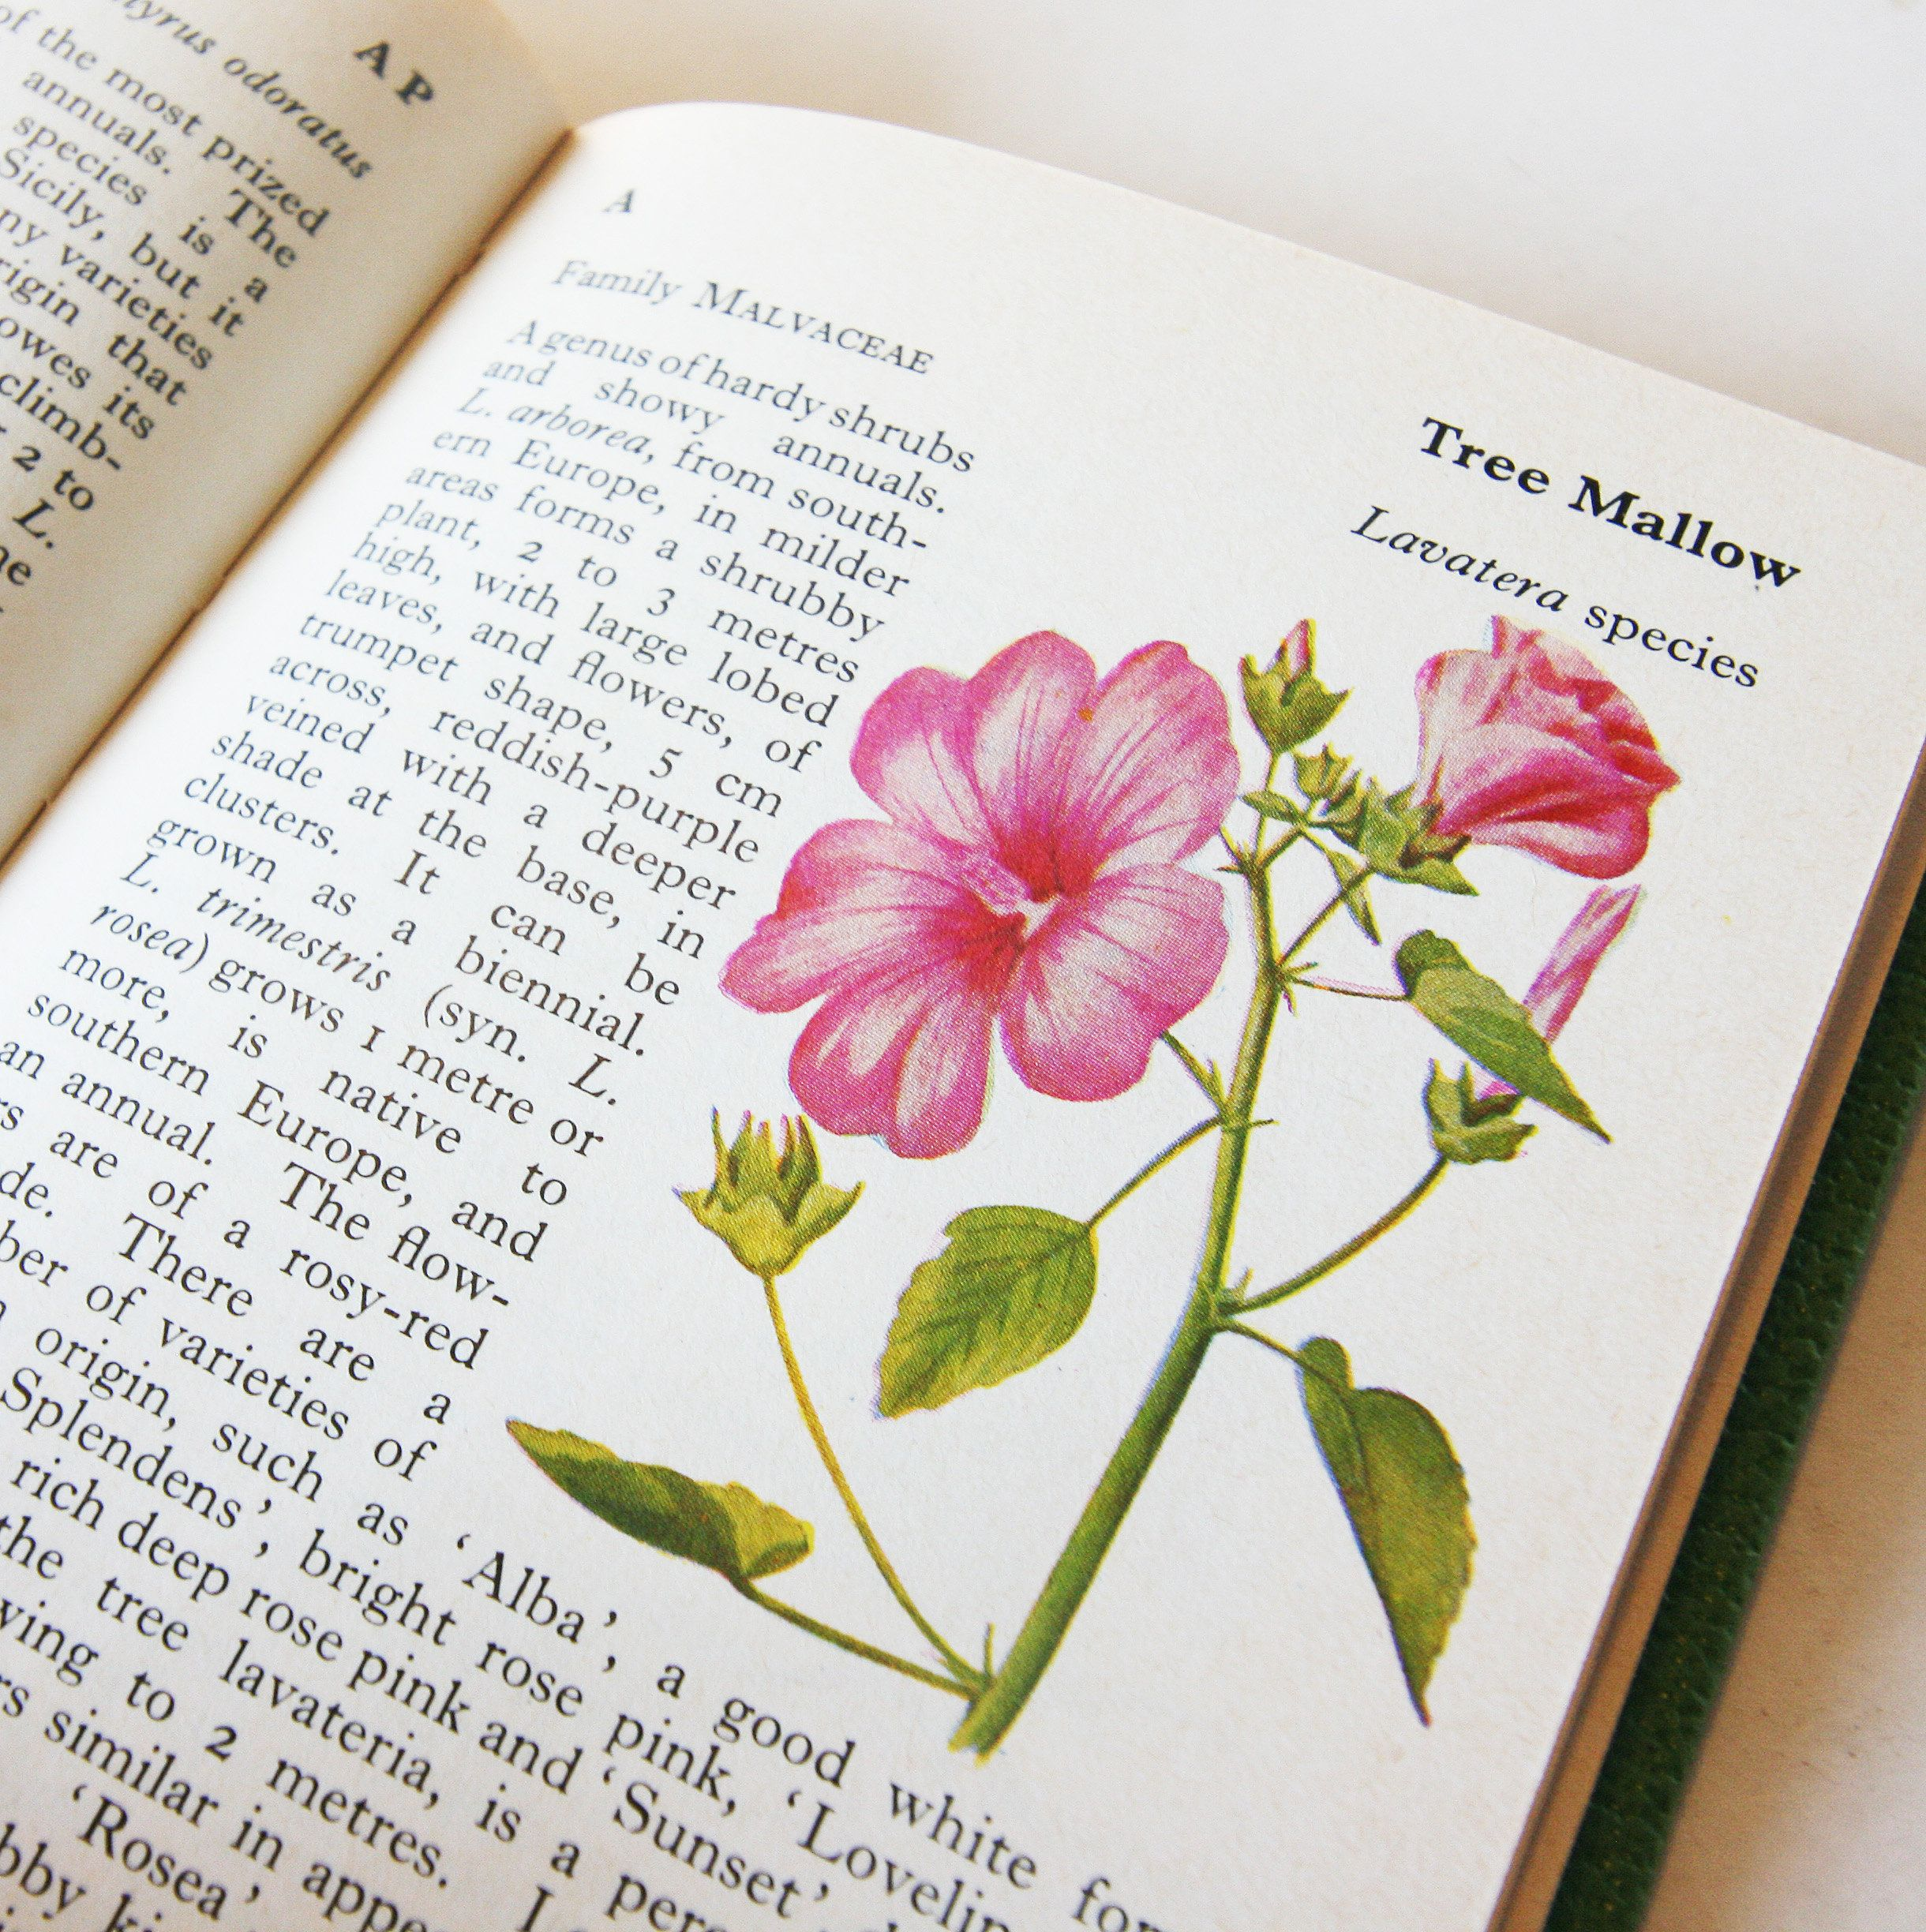 Vintage Garden Flowers 1960s Illustrated Plants Flower Picture Book Flowers Guide Old Retro Book Flowers Flower Pictures Plant Illustration